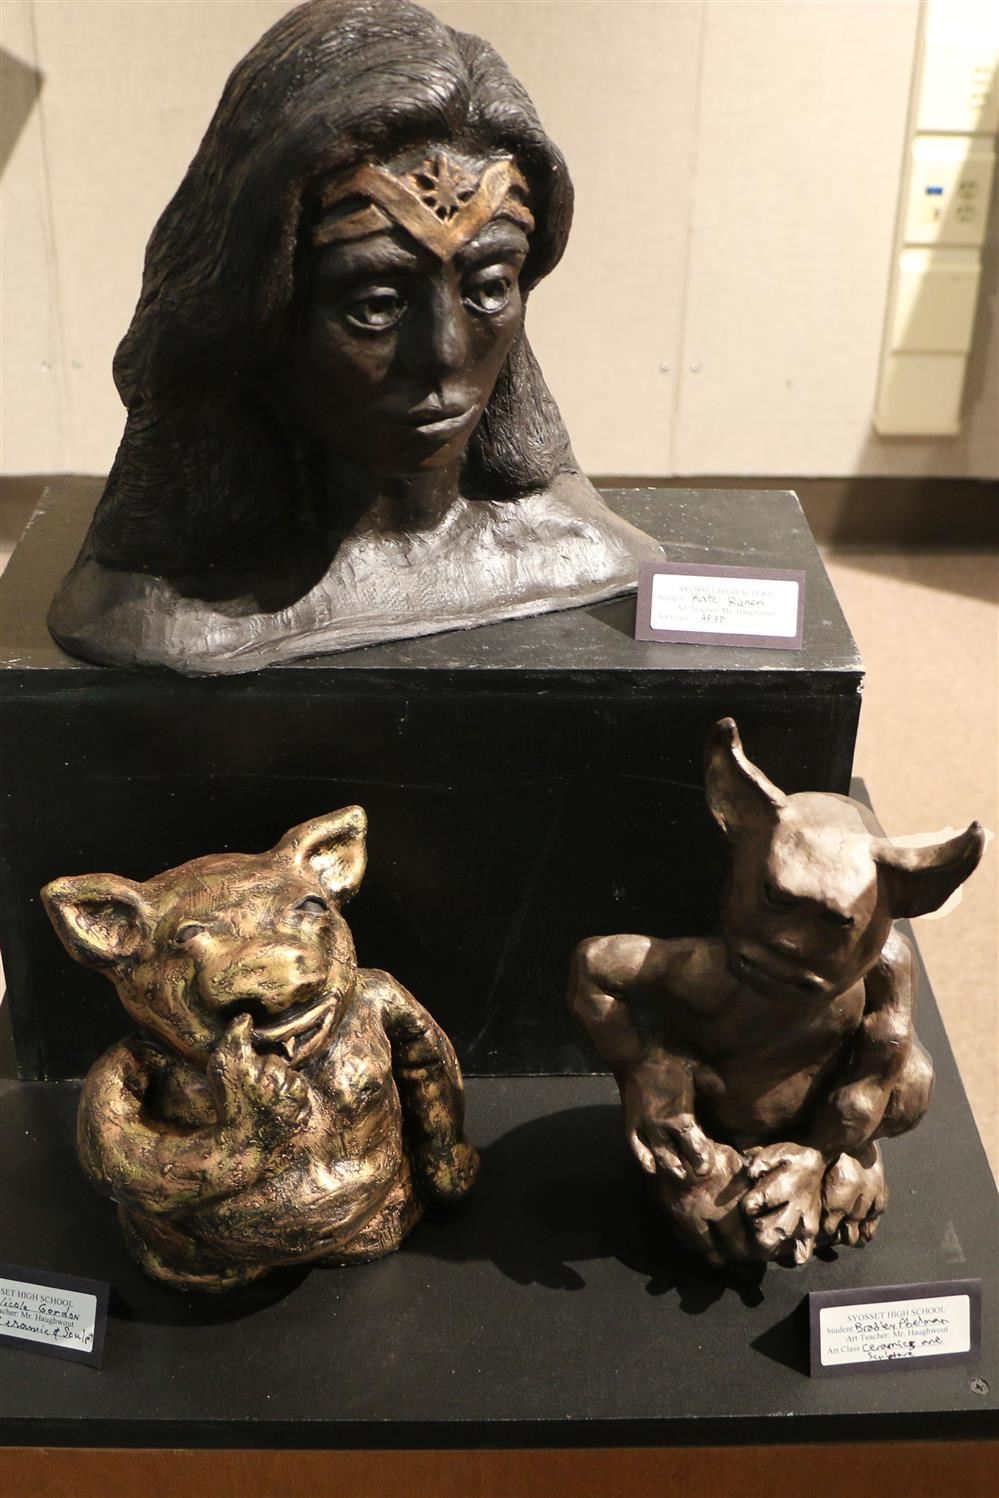 Three sculptures by students